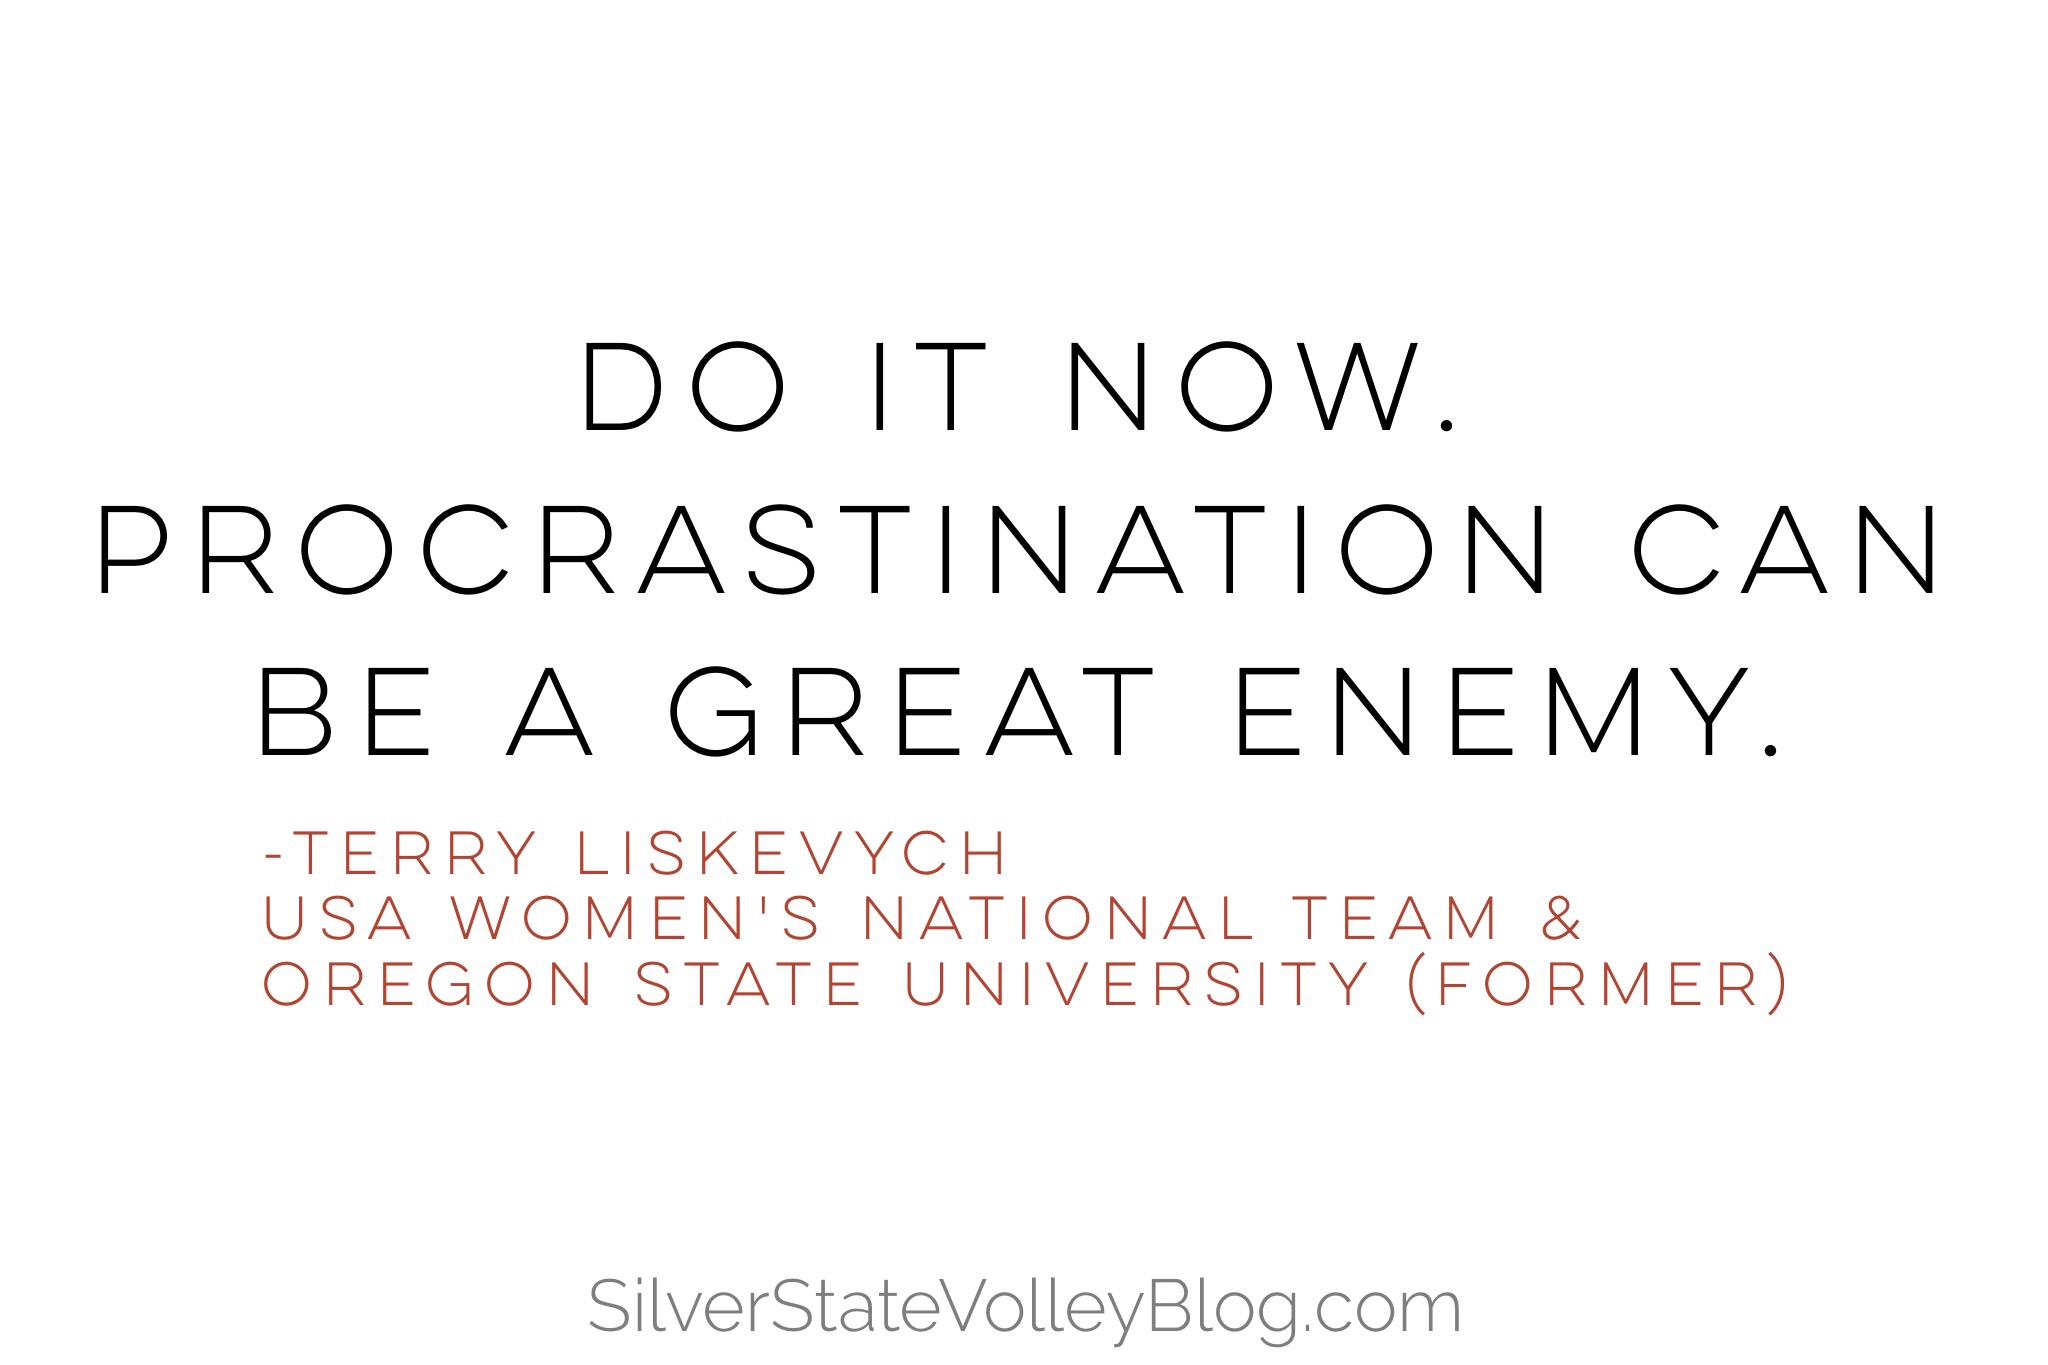 """""""Do it now. Procrastination can be a great enemy.""""  -Terry Liskevych  USA Women's National Team & Oregon State University (former)"""